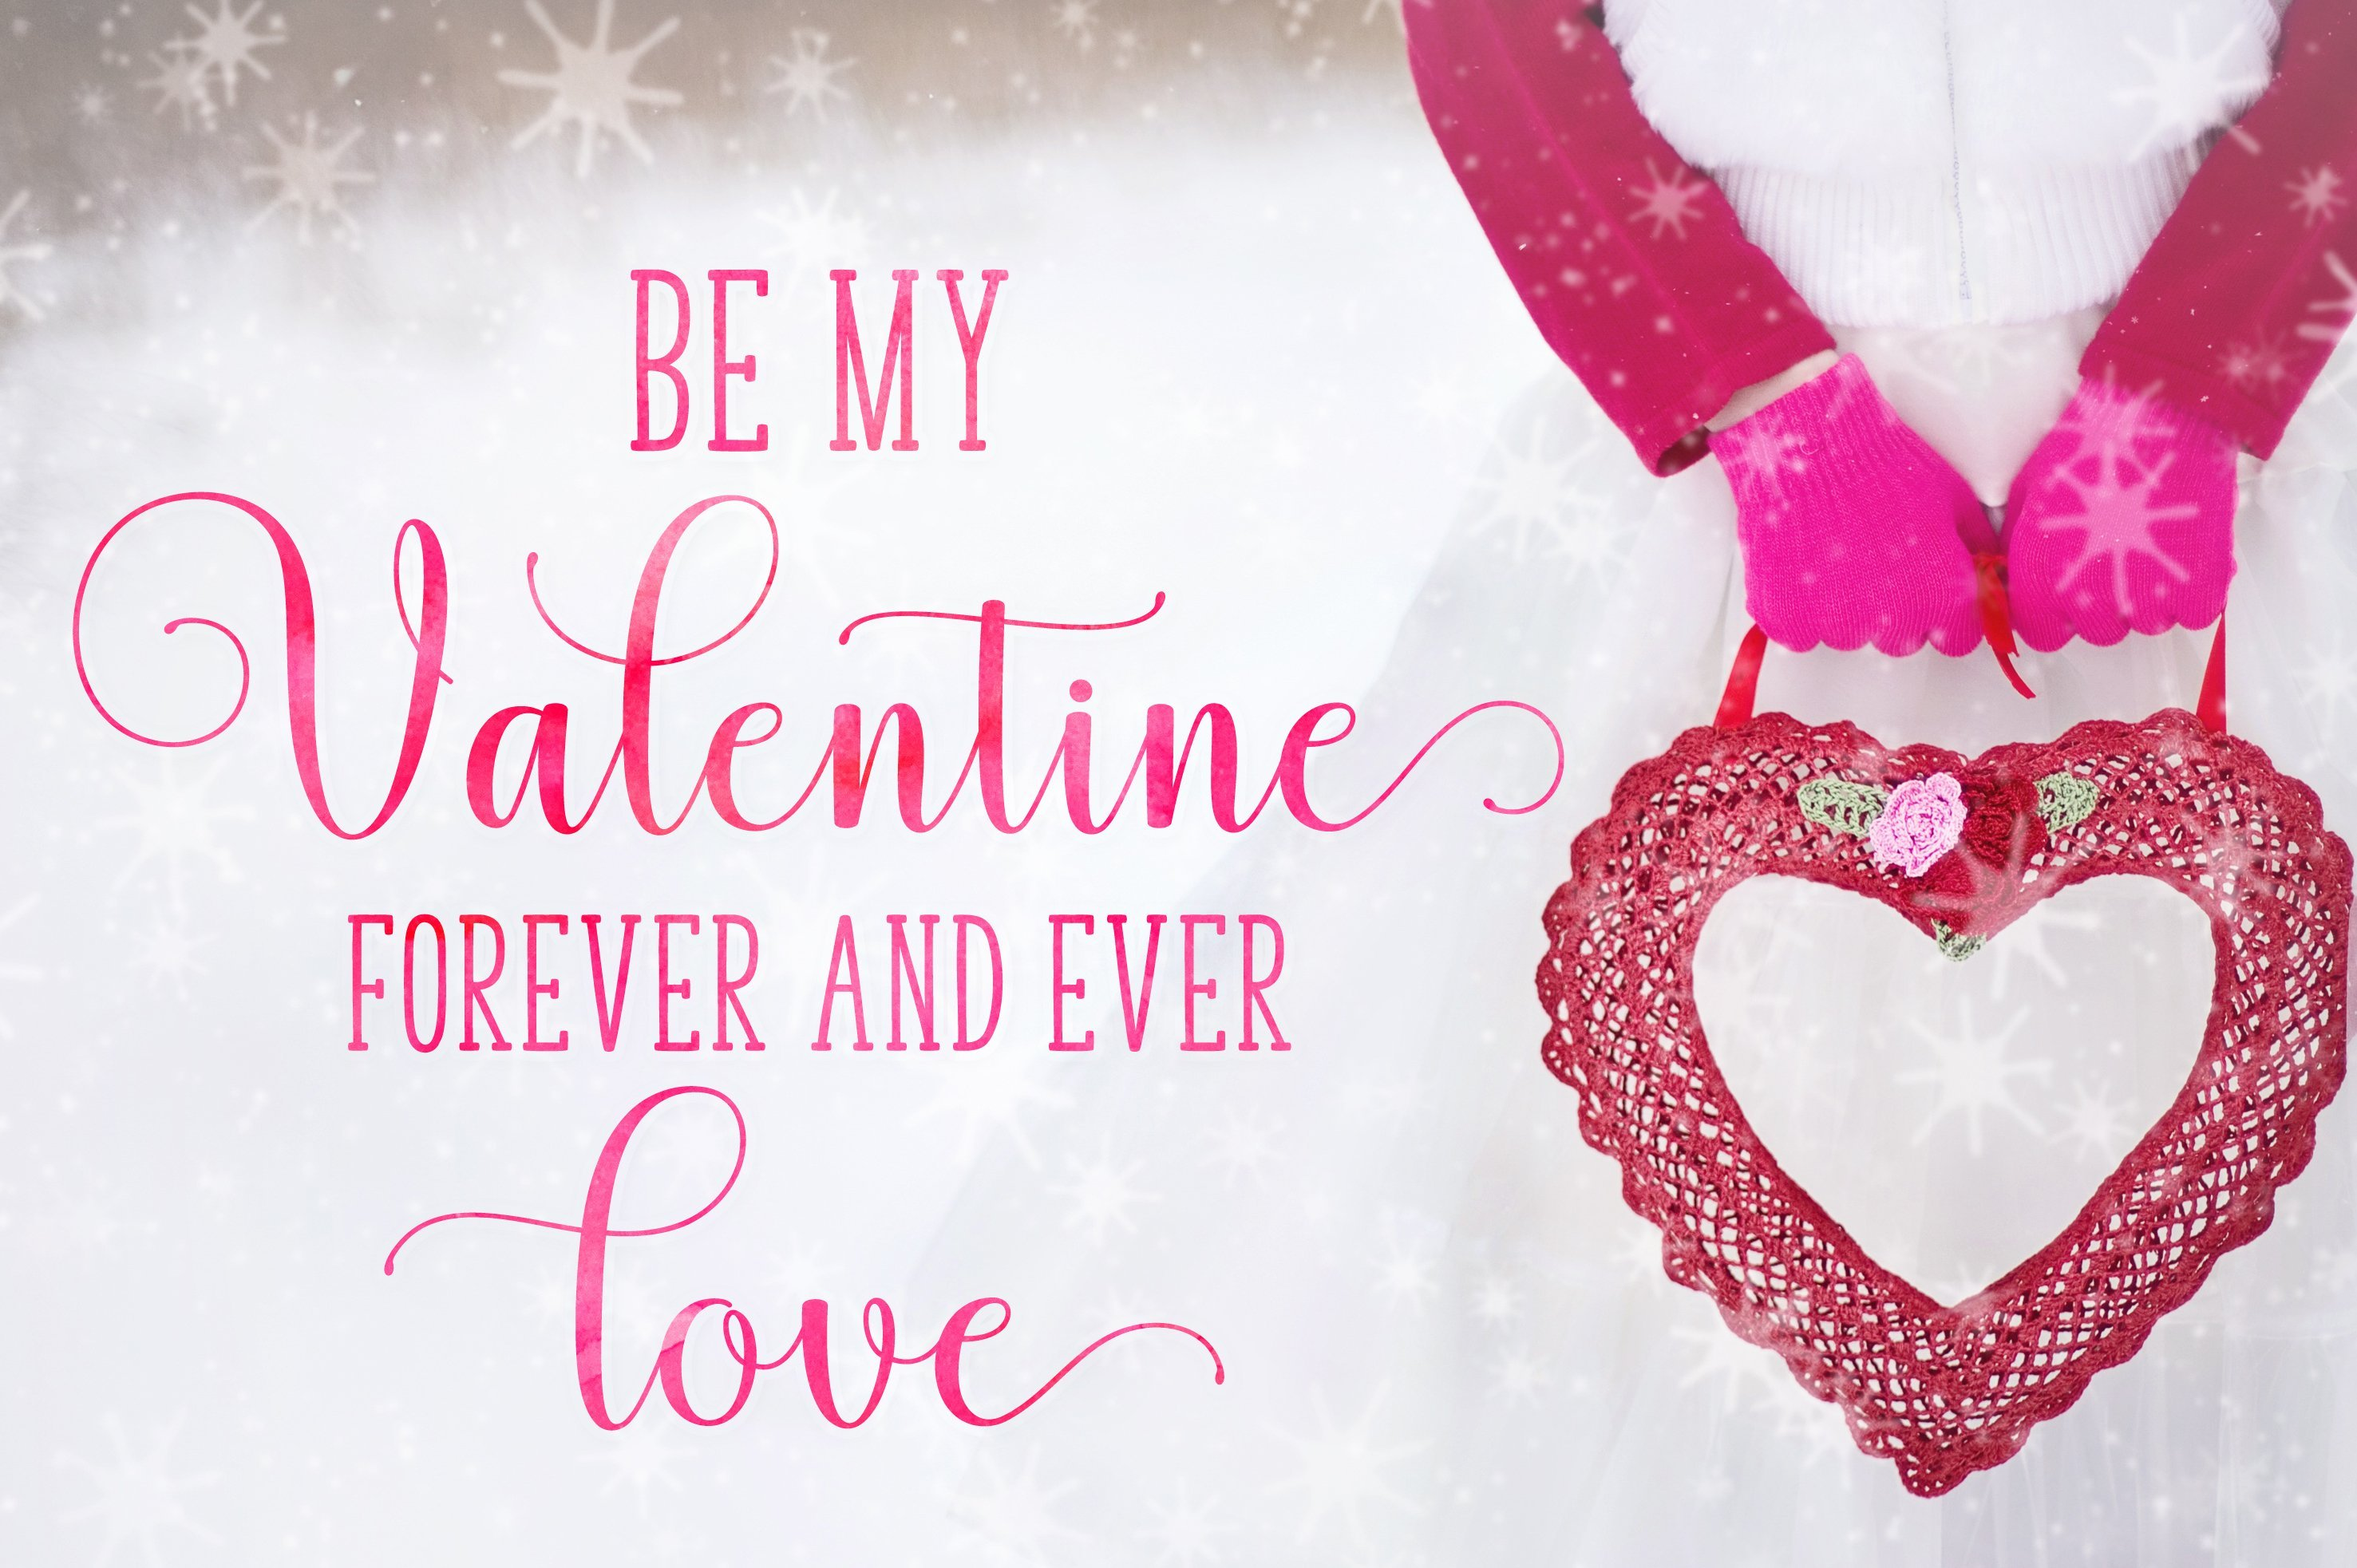 This font is perfect for declaration of love.